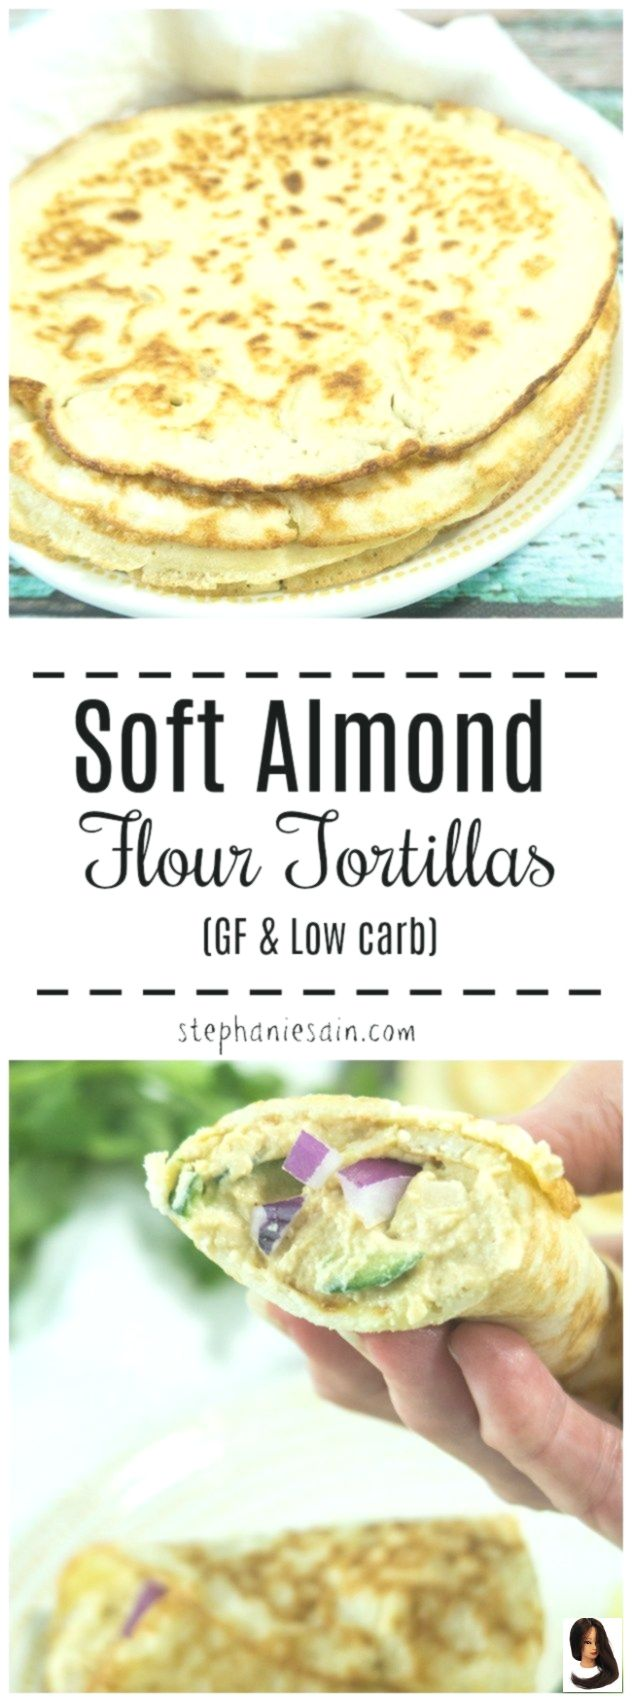 These Soft Almond Flour Tortillas are super soft, pliable and perfect for all yo abendessen low carb These Soft Almond Flour Tortillas are super soft, pliable and perfect for all yo...        These Soft Almond Flour Tortillas are super soft, pliable and perfect for all your wrapping needs. Great for burritos, tacos, sandwiches and much more. Gluten Free & Low carb.